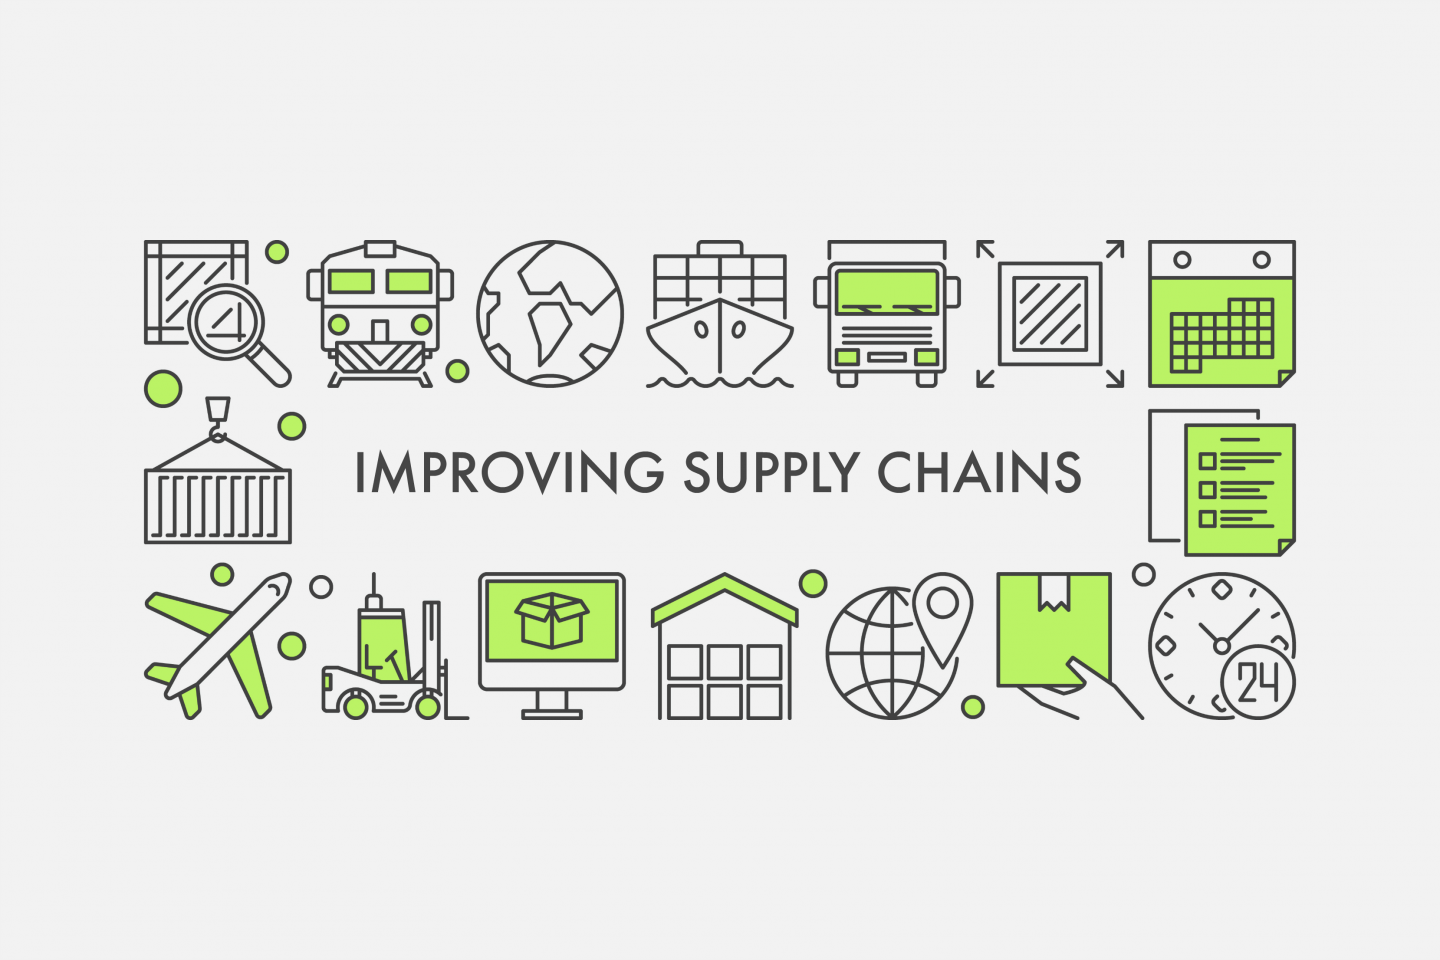 Improving Supply Chains